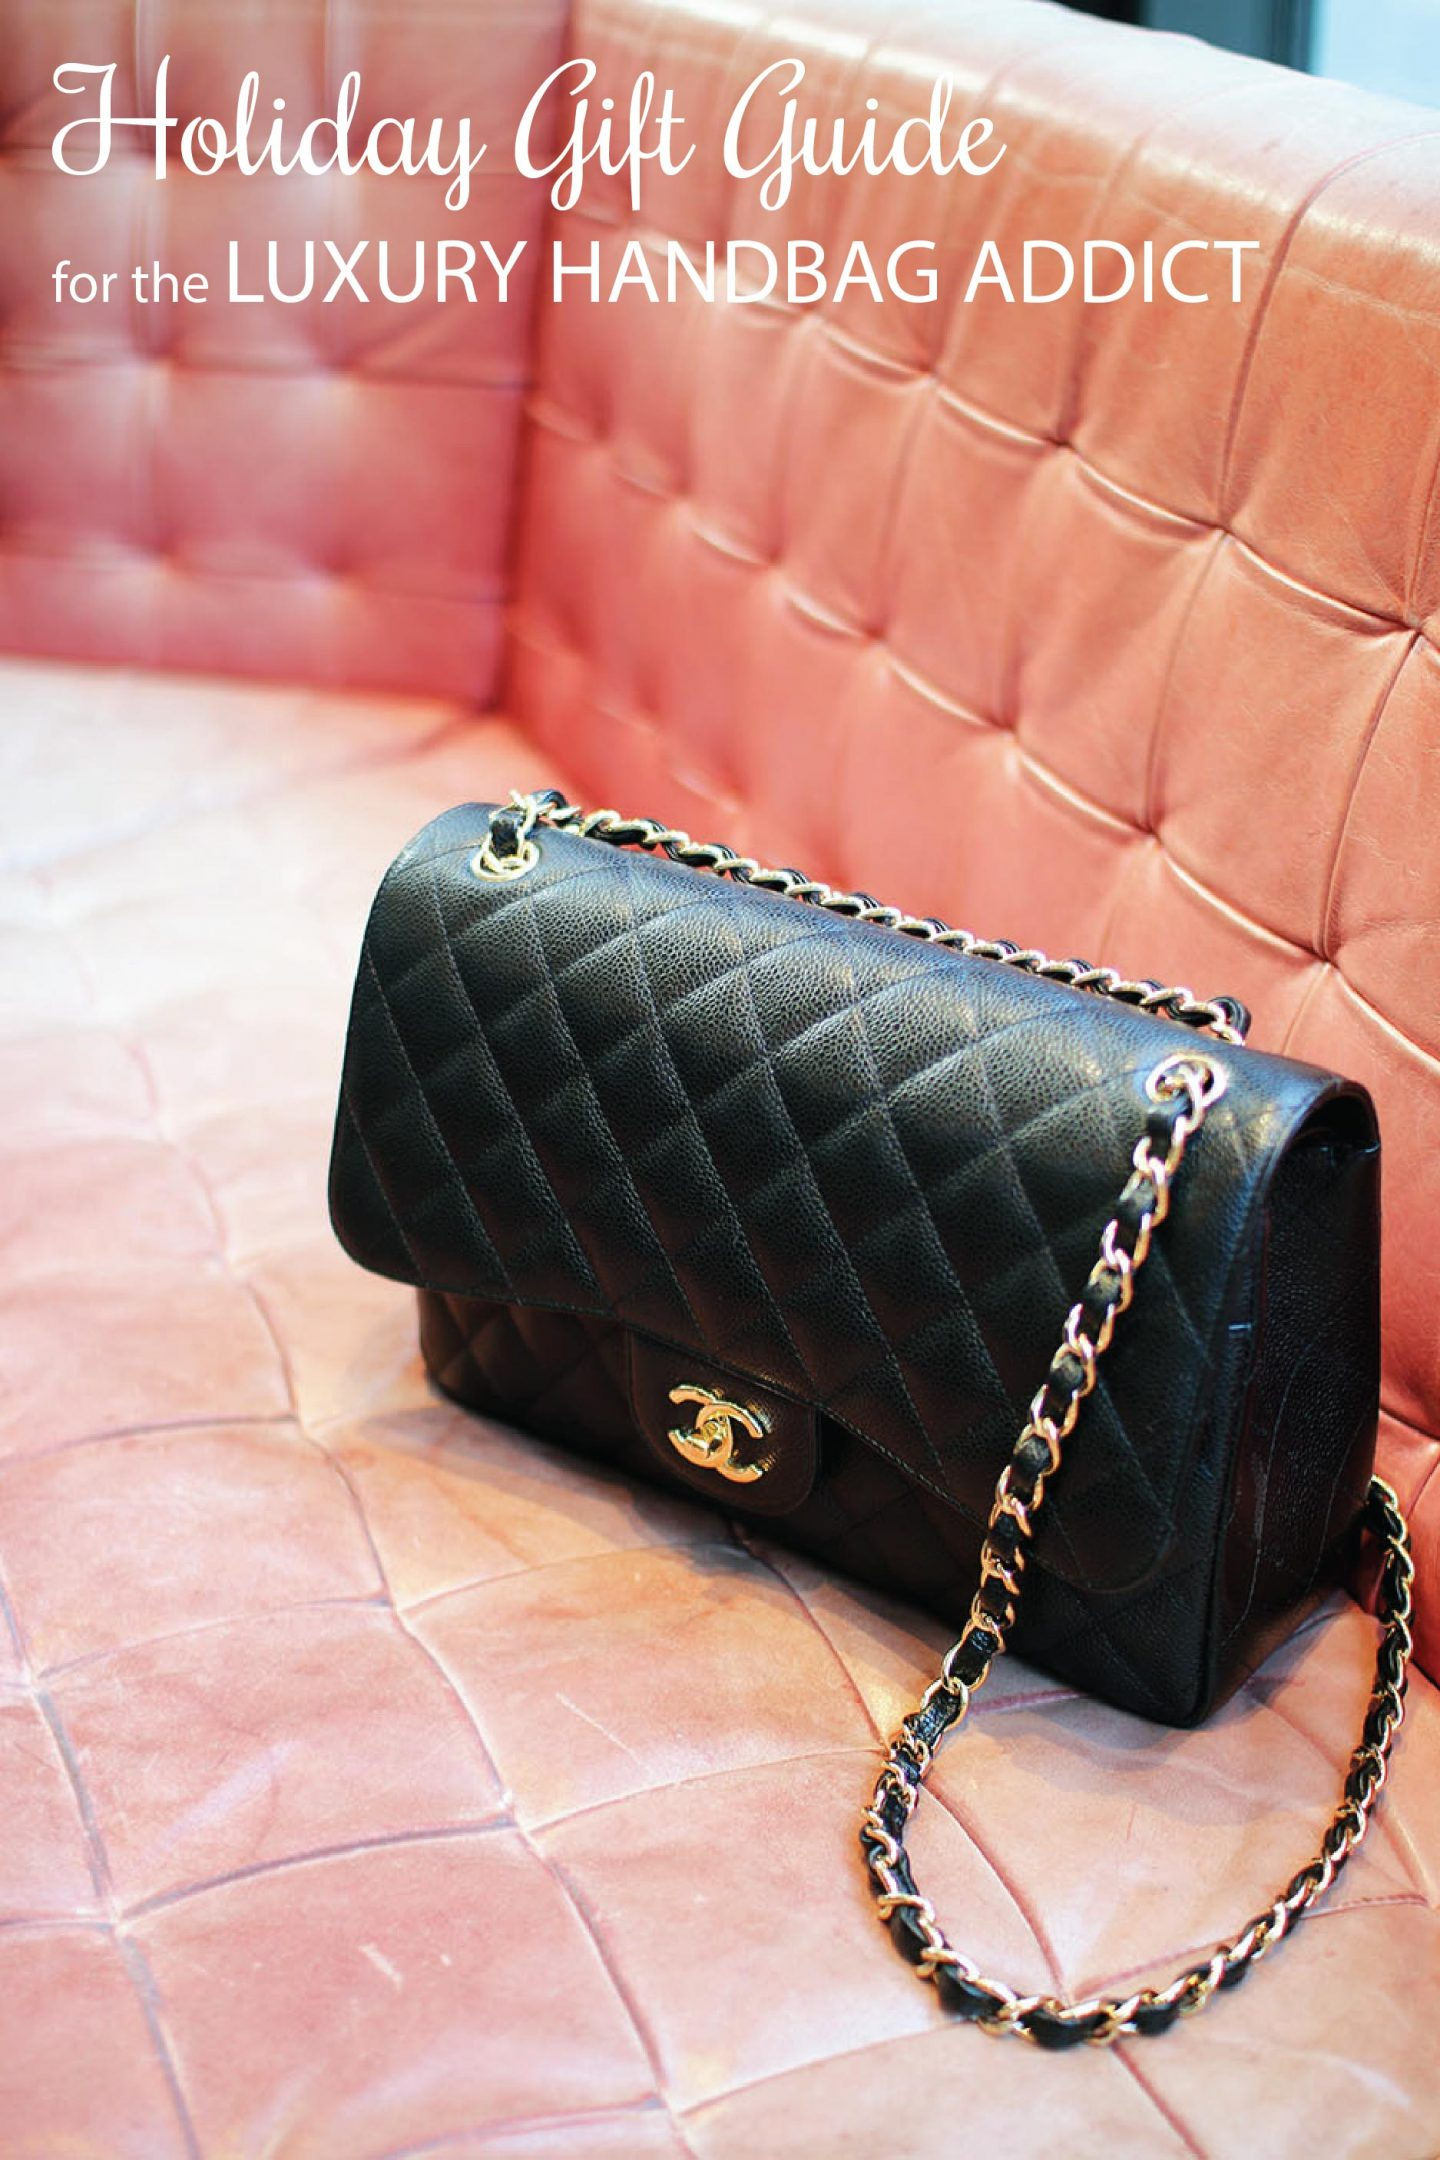 Holiday Gift Guide: For The Luxury Handbag Addict